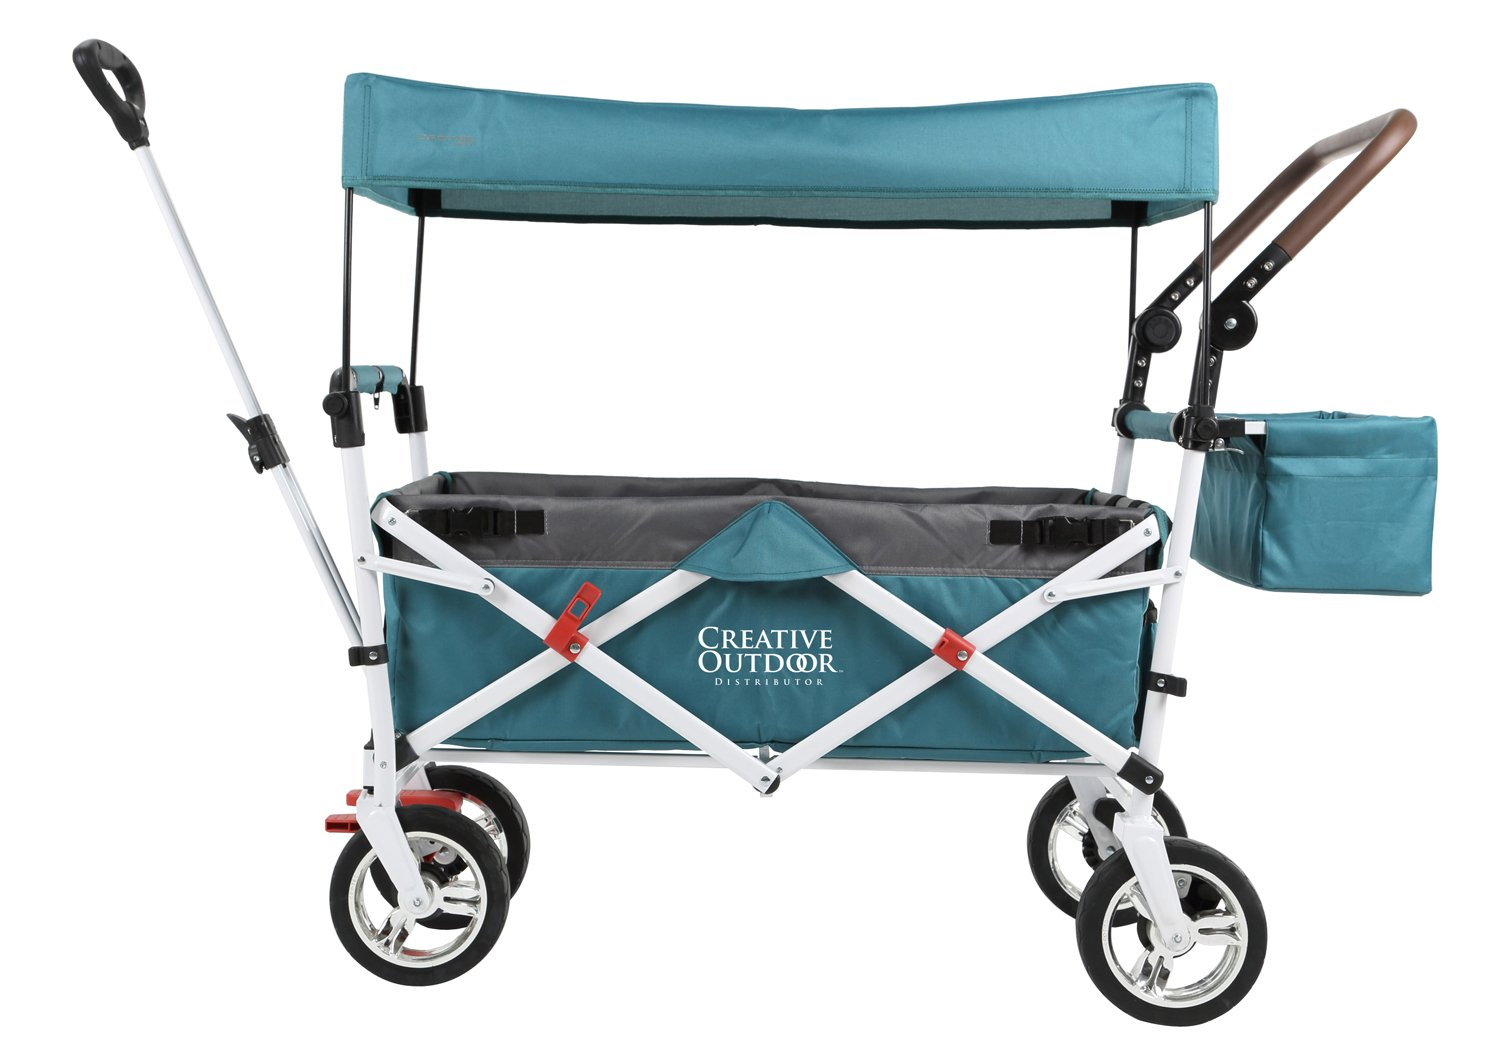 Push Pull Wagon for Kids, Foldable with Sun/Rain Shade (Aqua Gray)